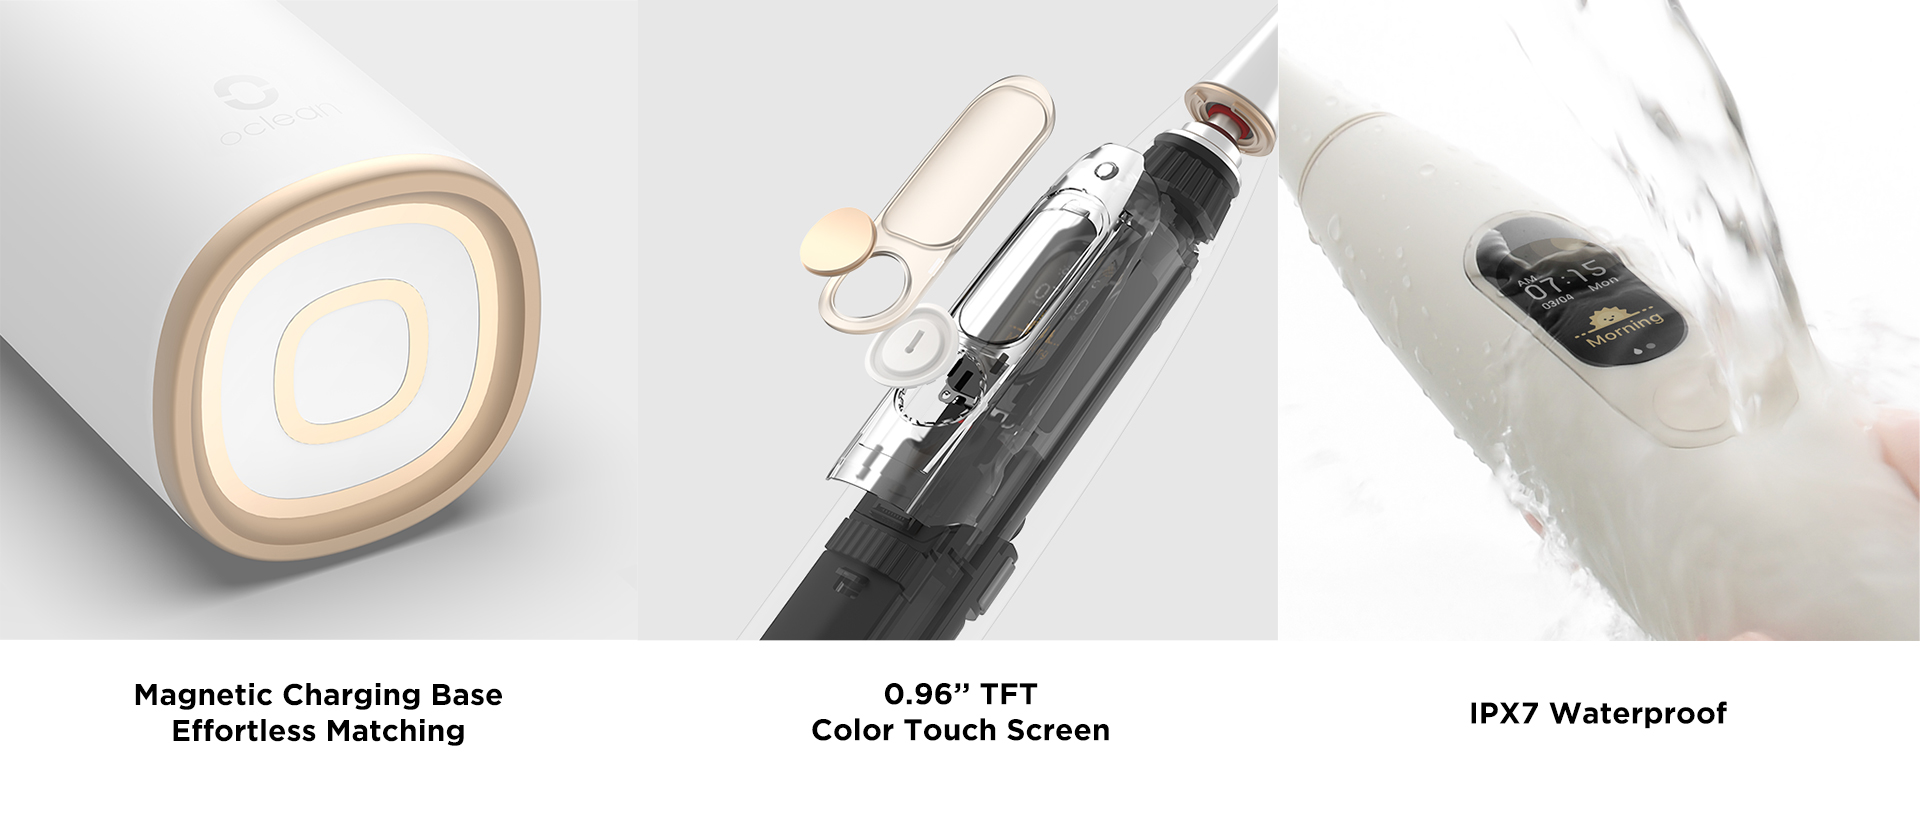 magenetic charging bcase effortless matching  color touch screen